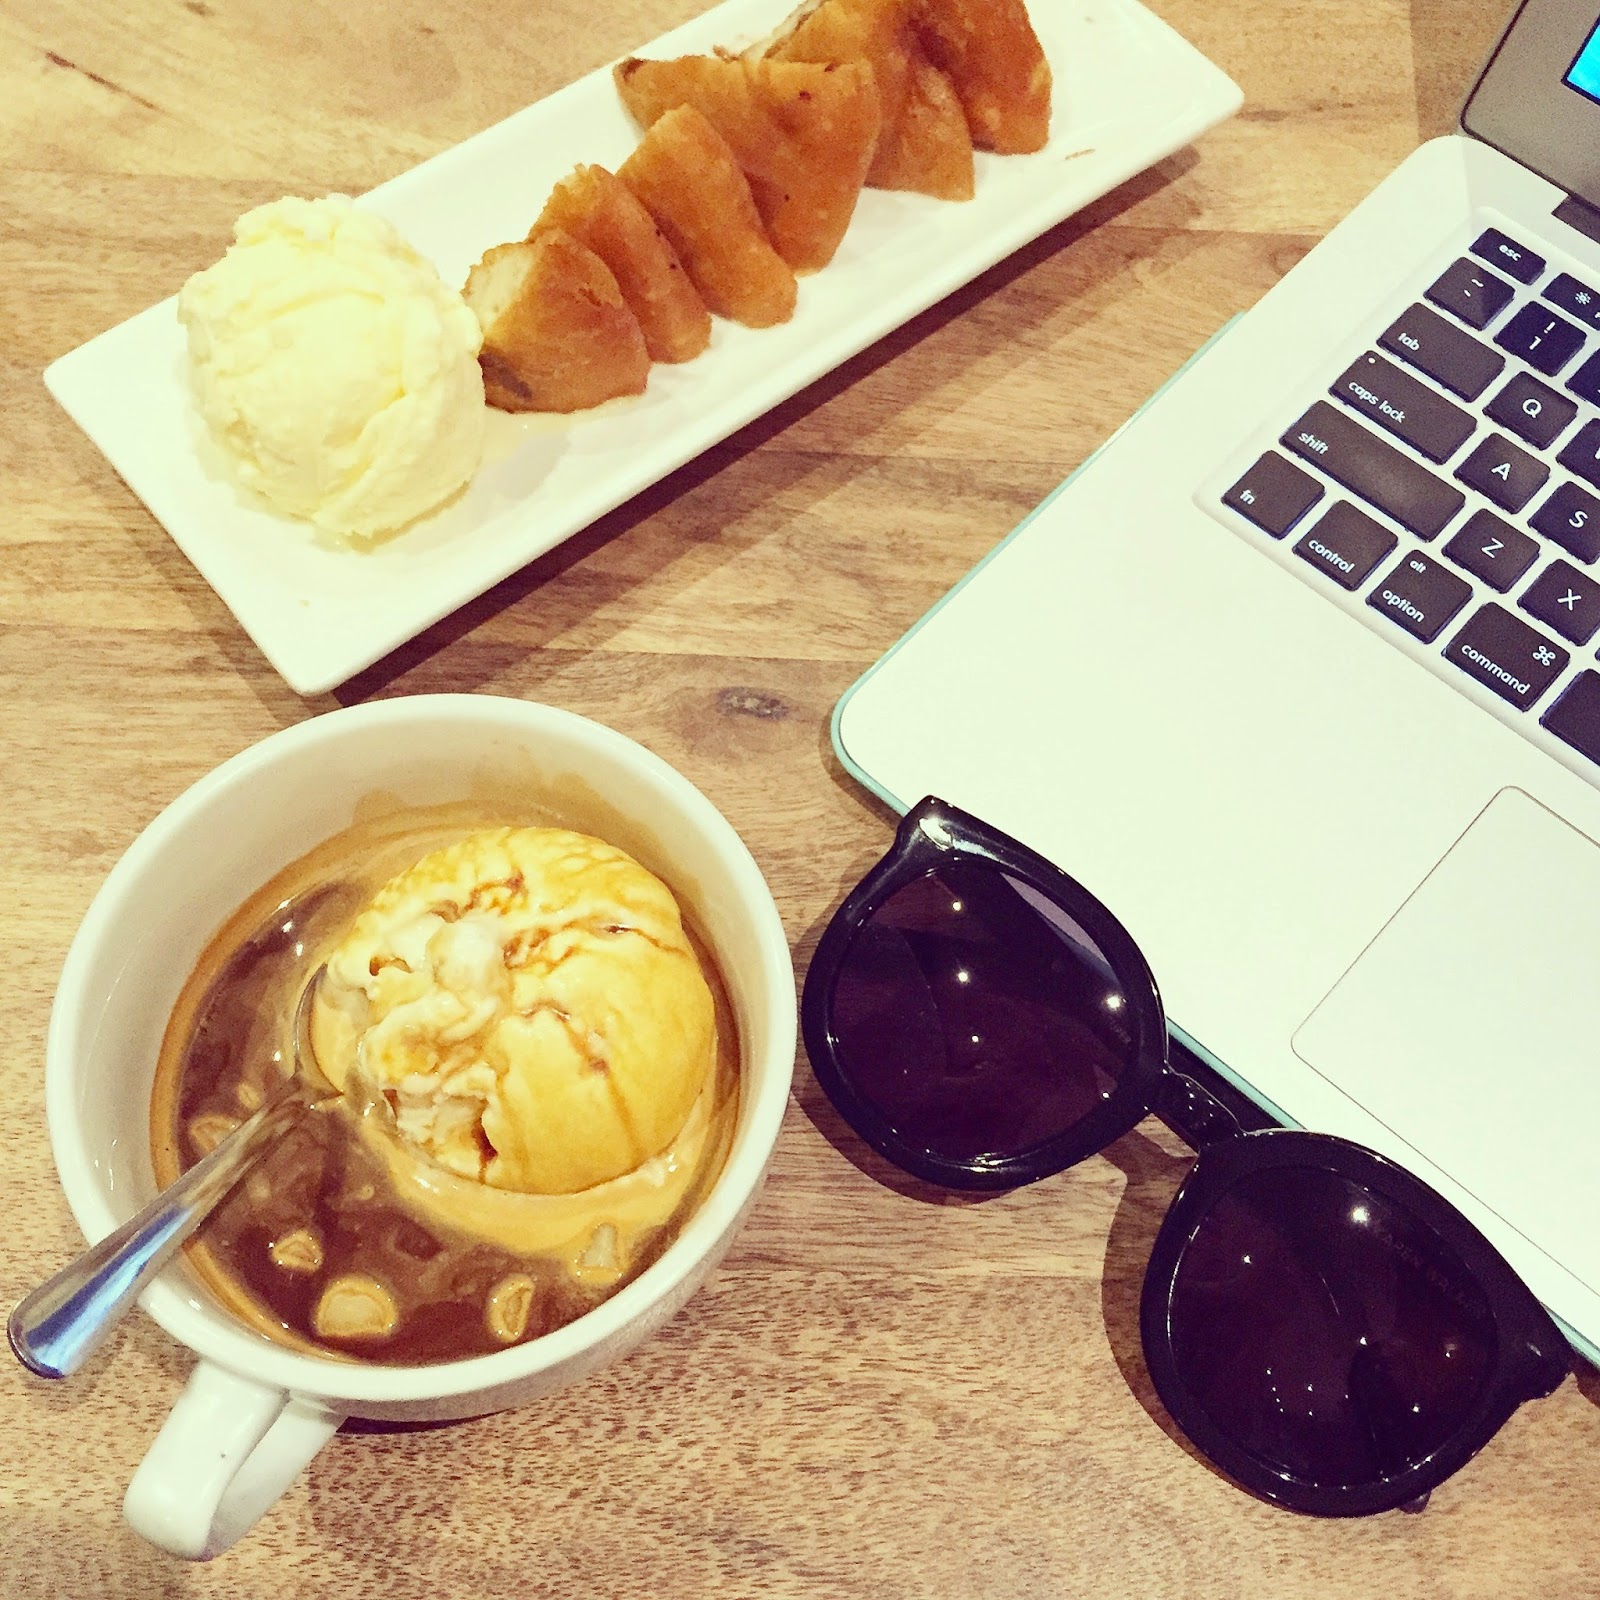 Kanren walker super doper sunglasses, dessert , sweets, macair, fashion blog